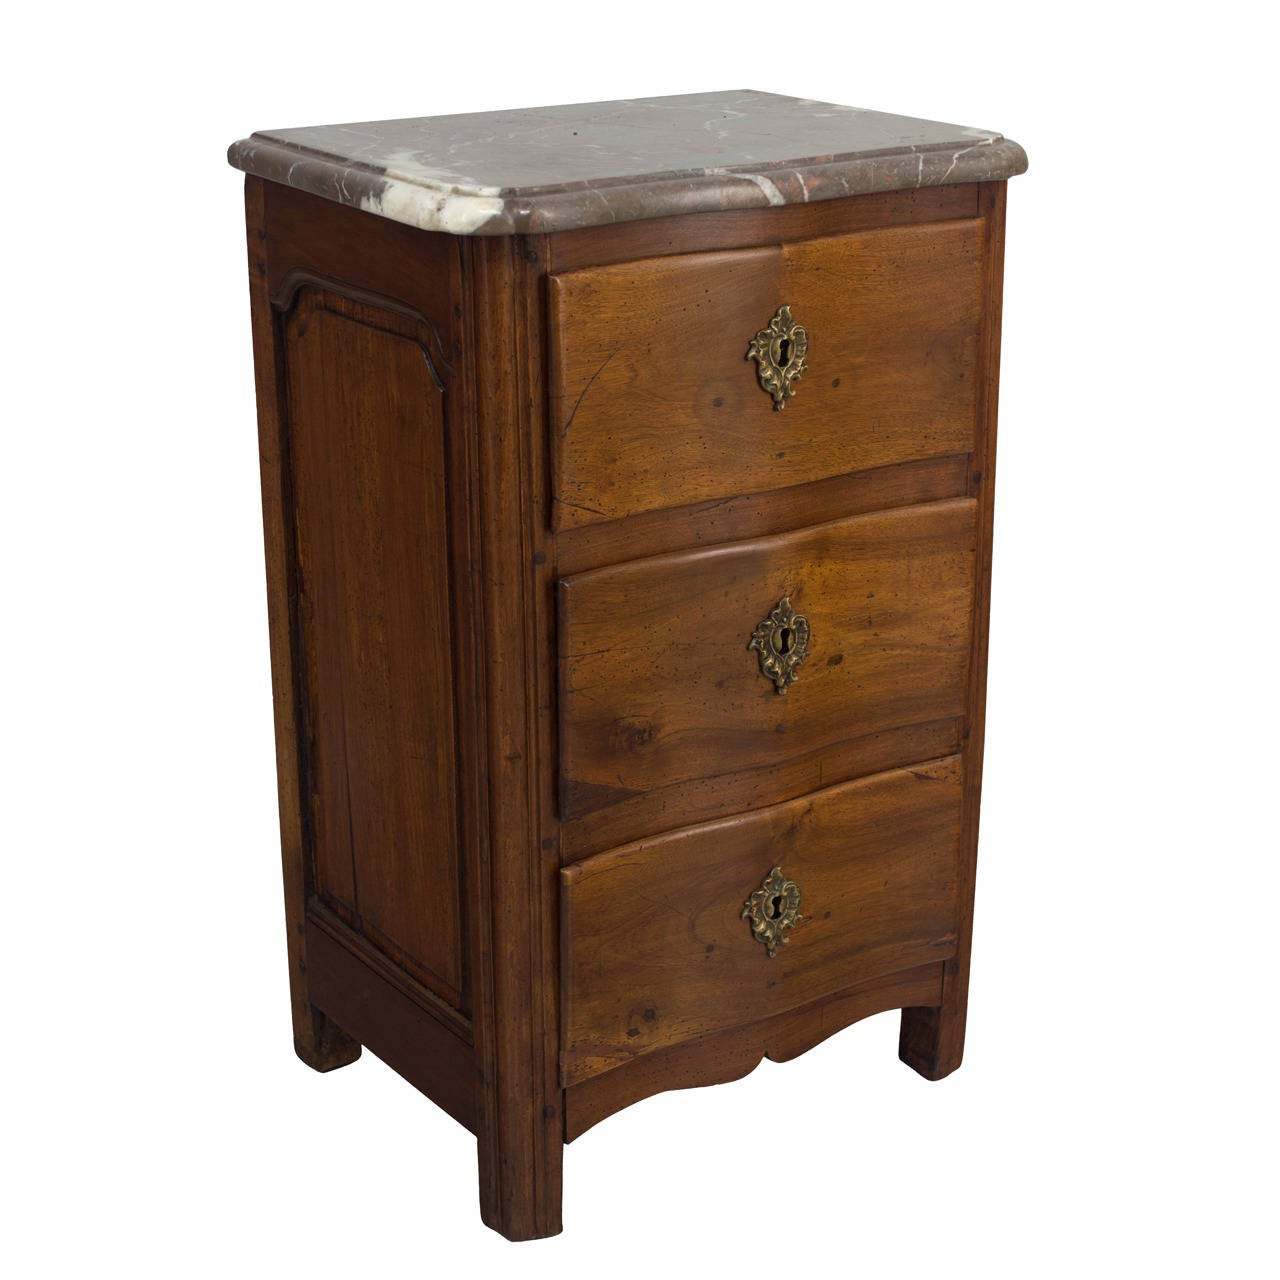 18th c french louis xv style petite commode or chest of drawers at 1stdibs. Black Bedroom Furniture Sets. Home Design Ideas